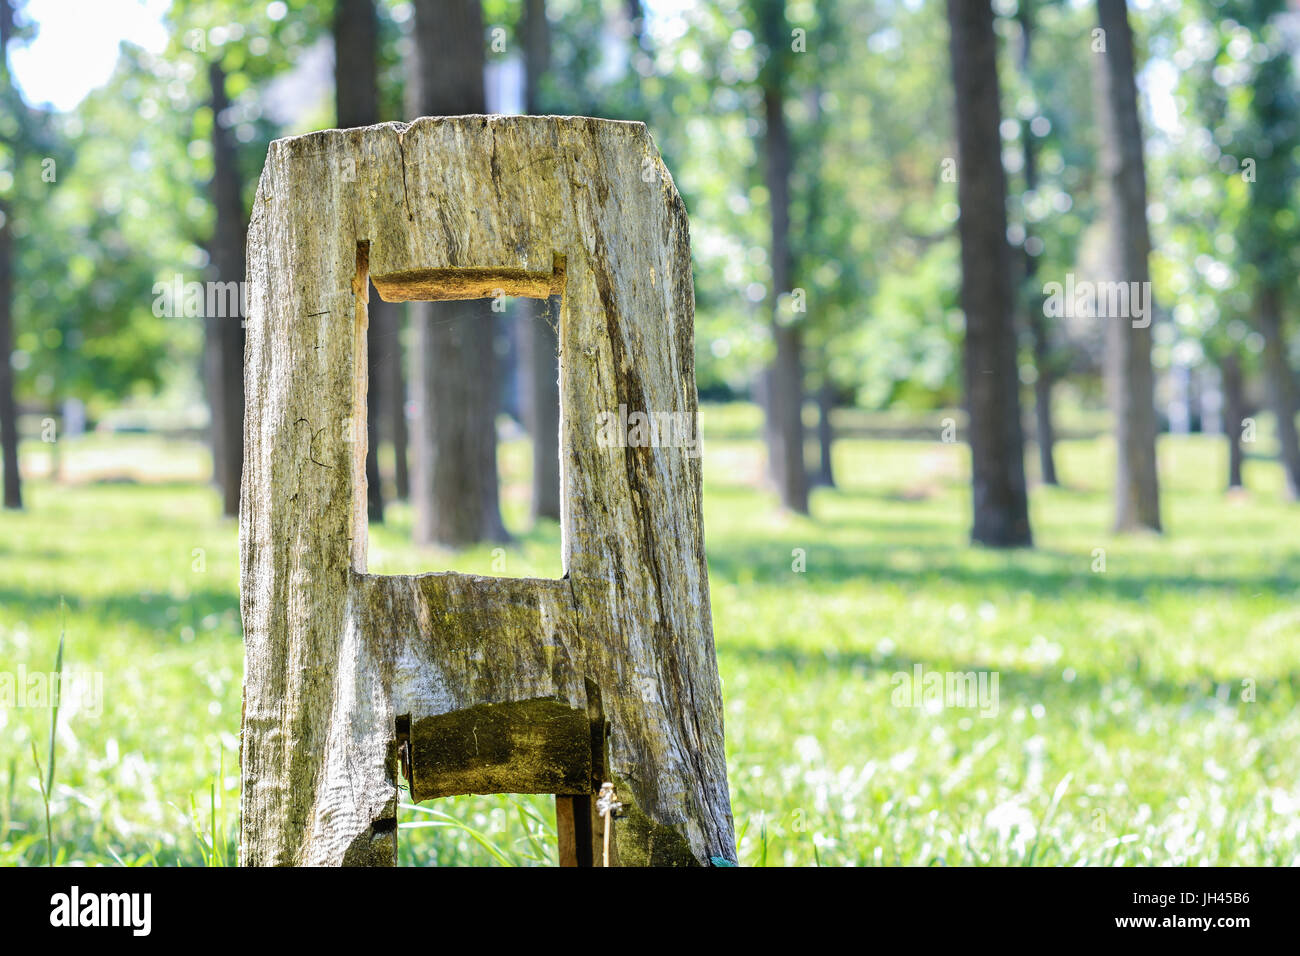 Stump in the park. - Stock Image